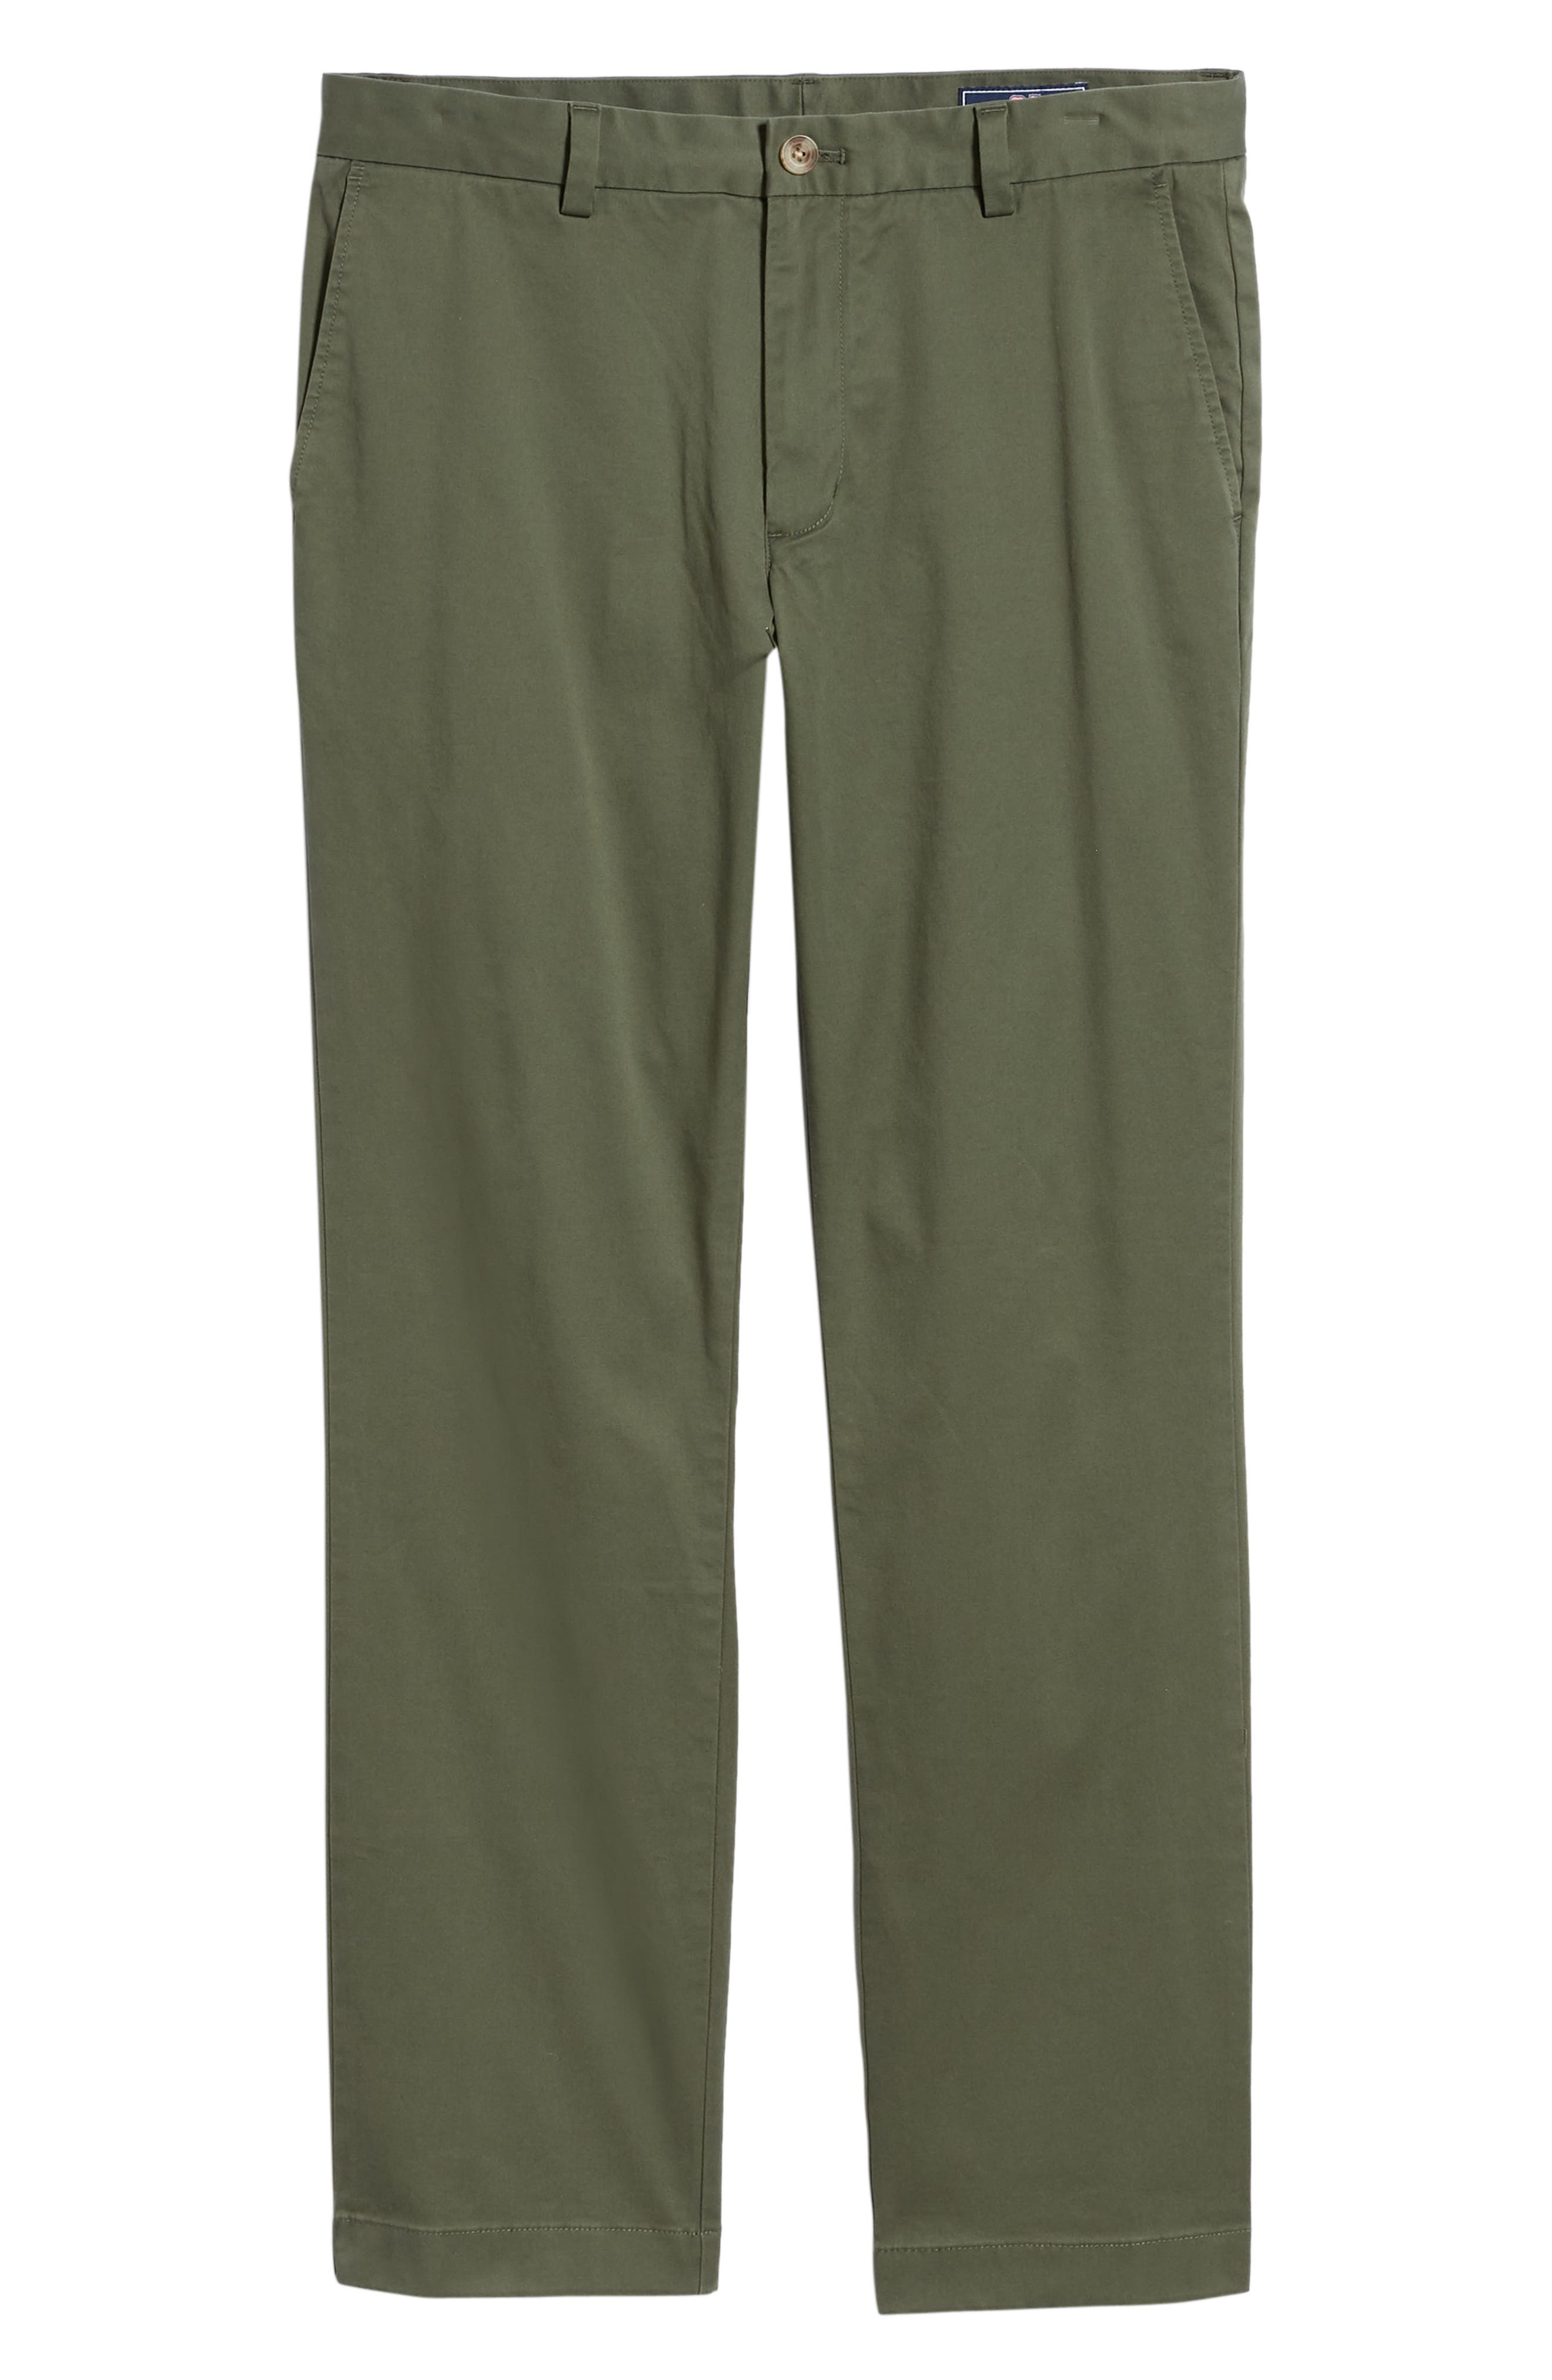 Breaker Flat Front Stretch Cotton Pants,                             Alternate thumbnail 6, color,                             CARGO GREEN